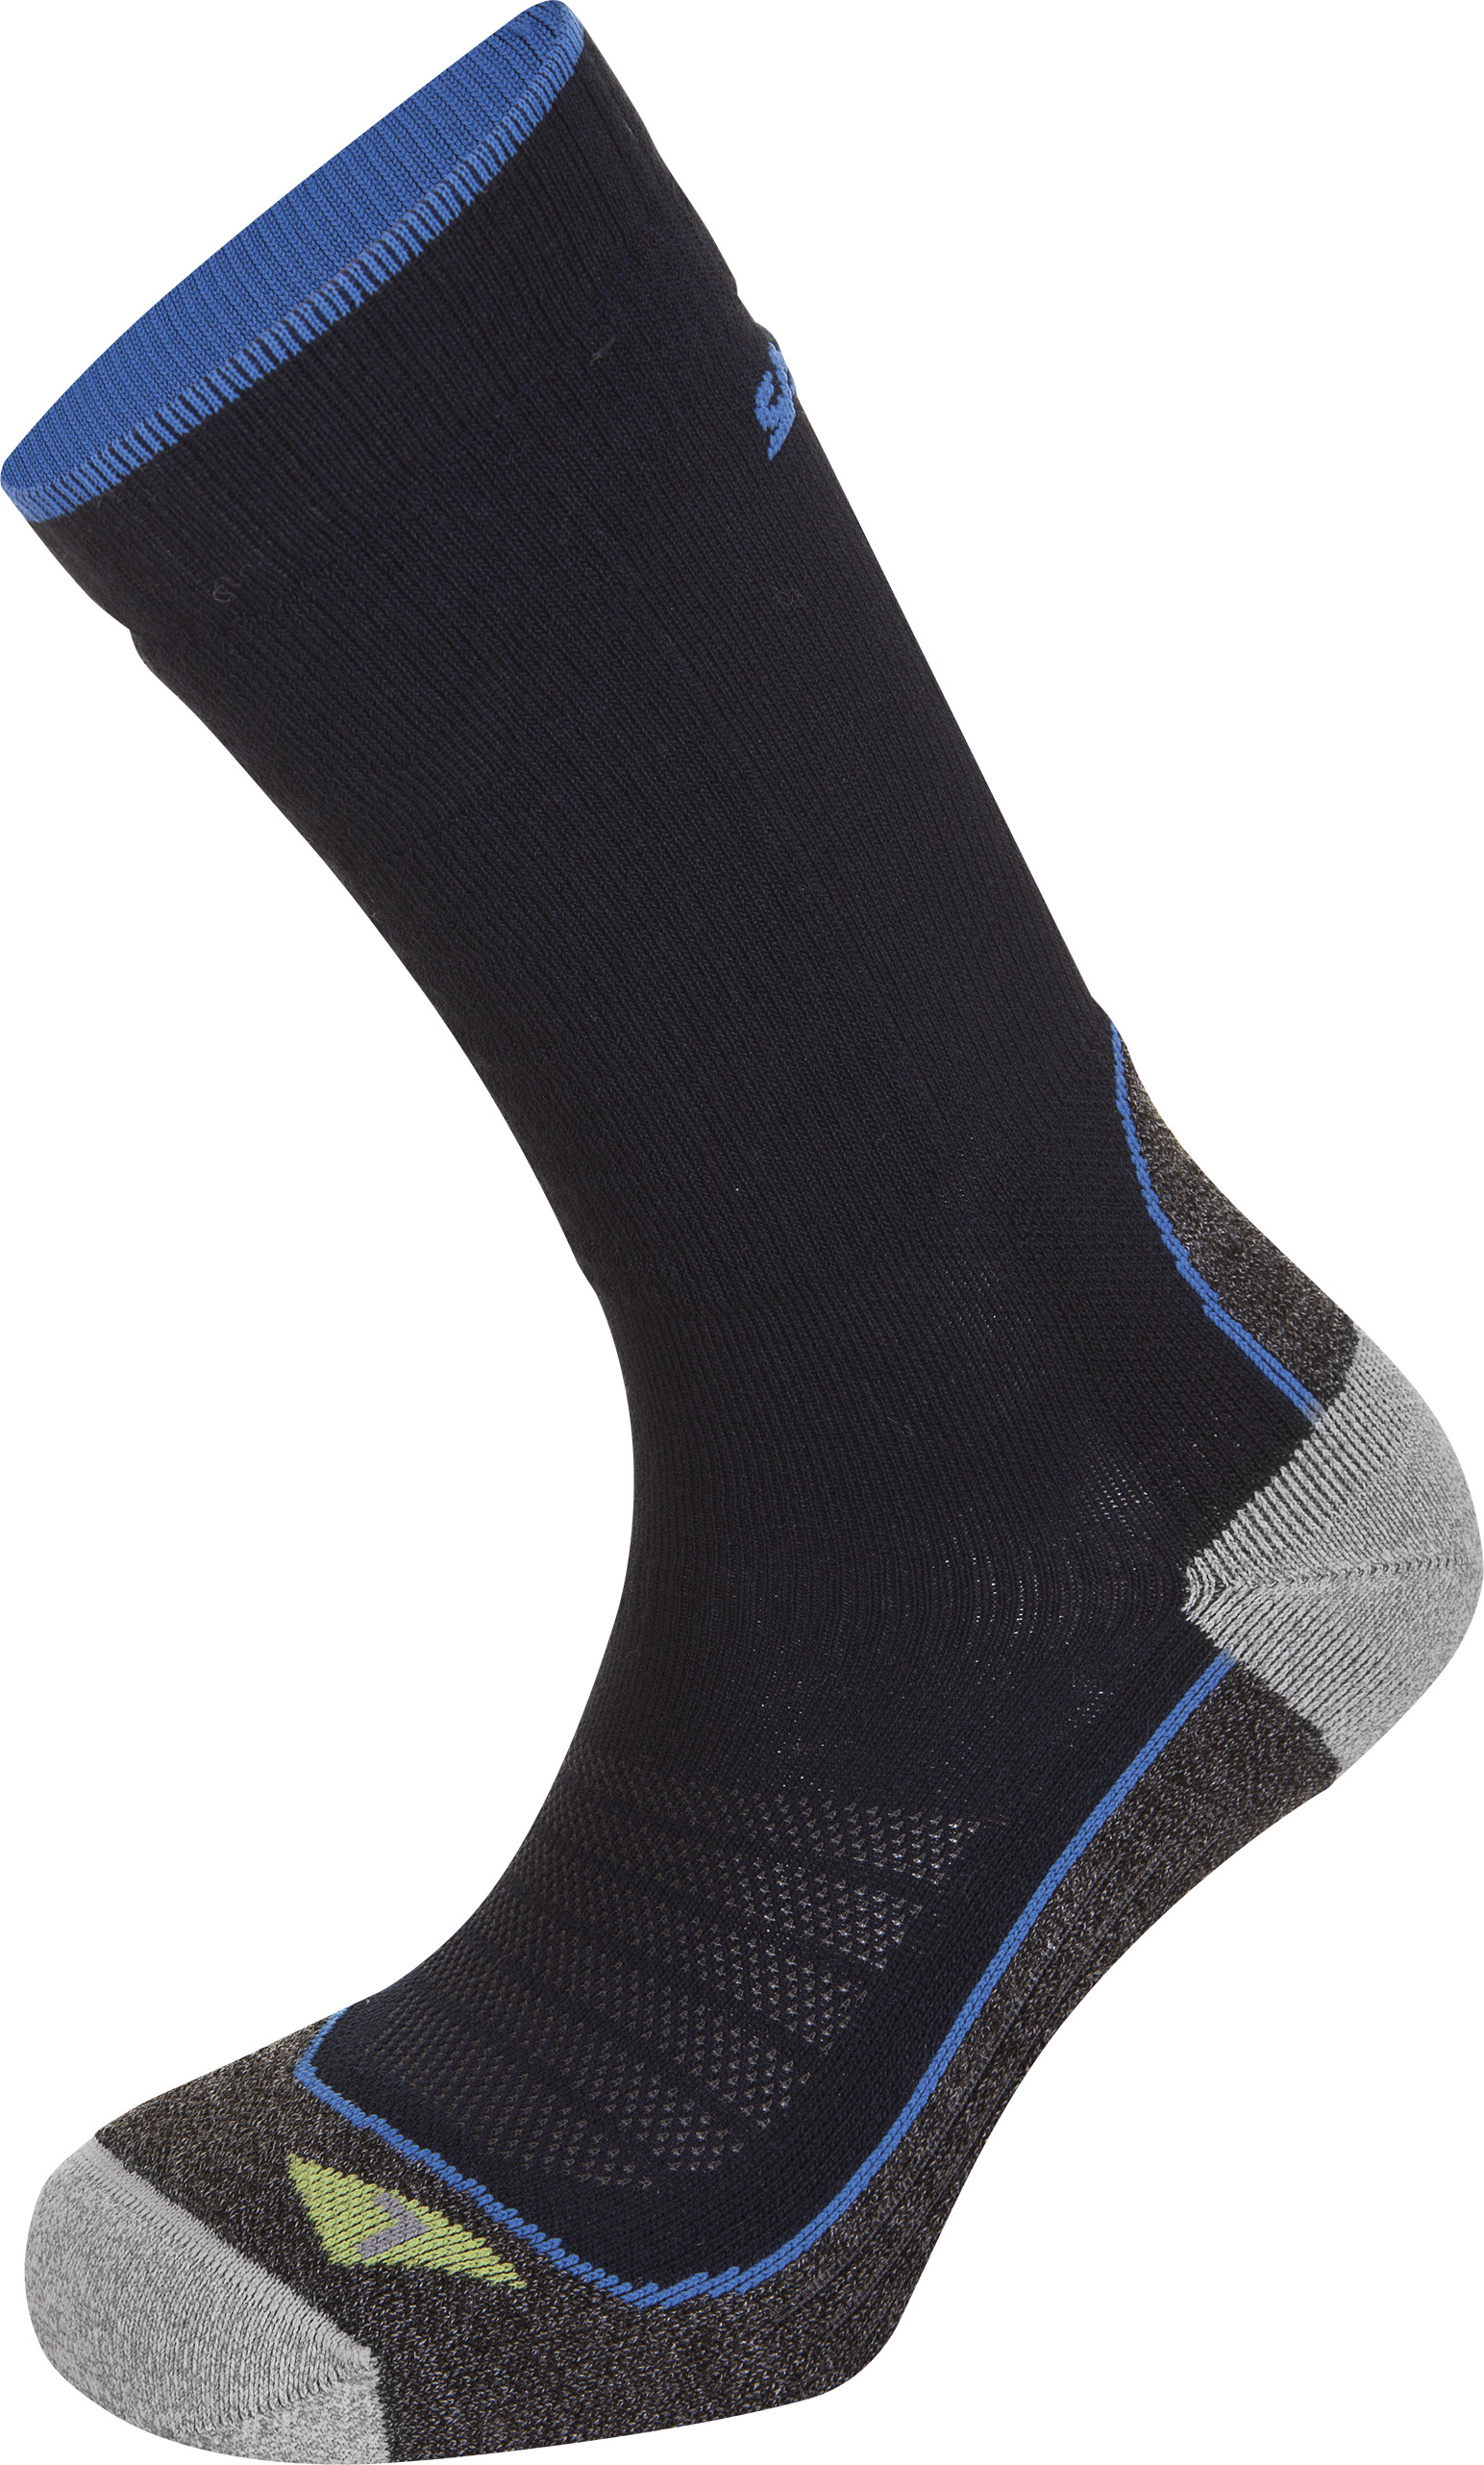 Купить Носки Salewa Alpine Socks TREK BALANCE SK navy/8490 / 1157171